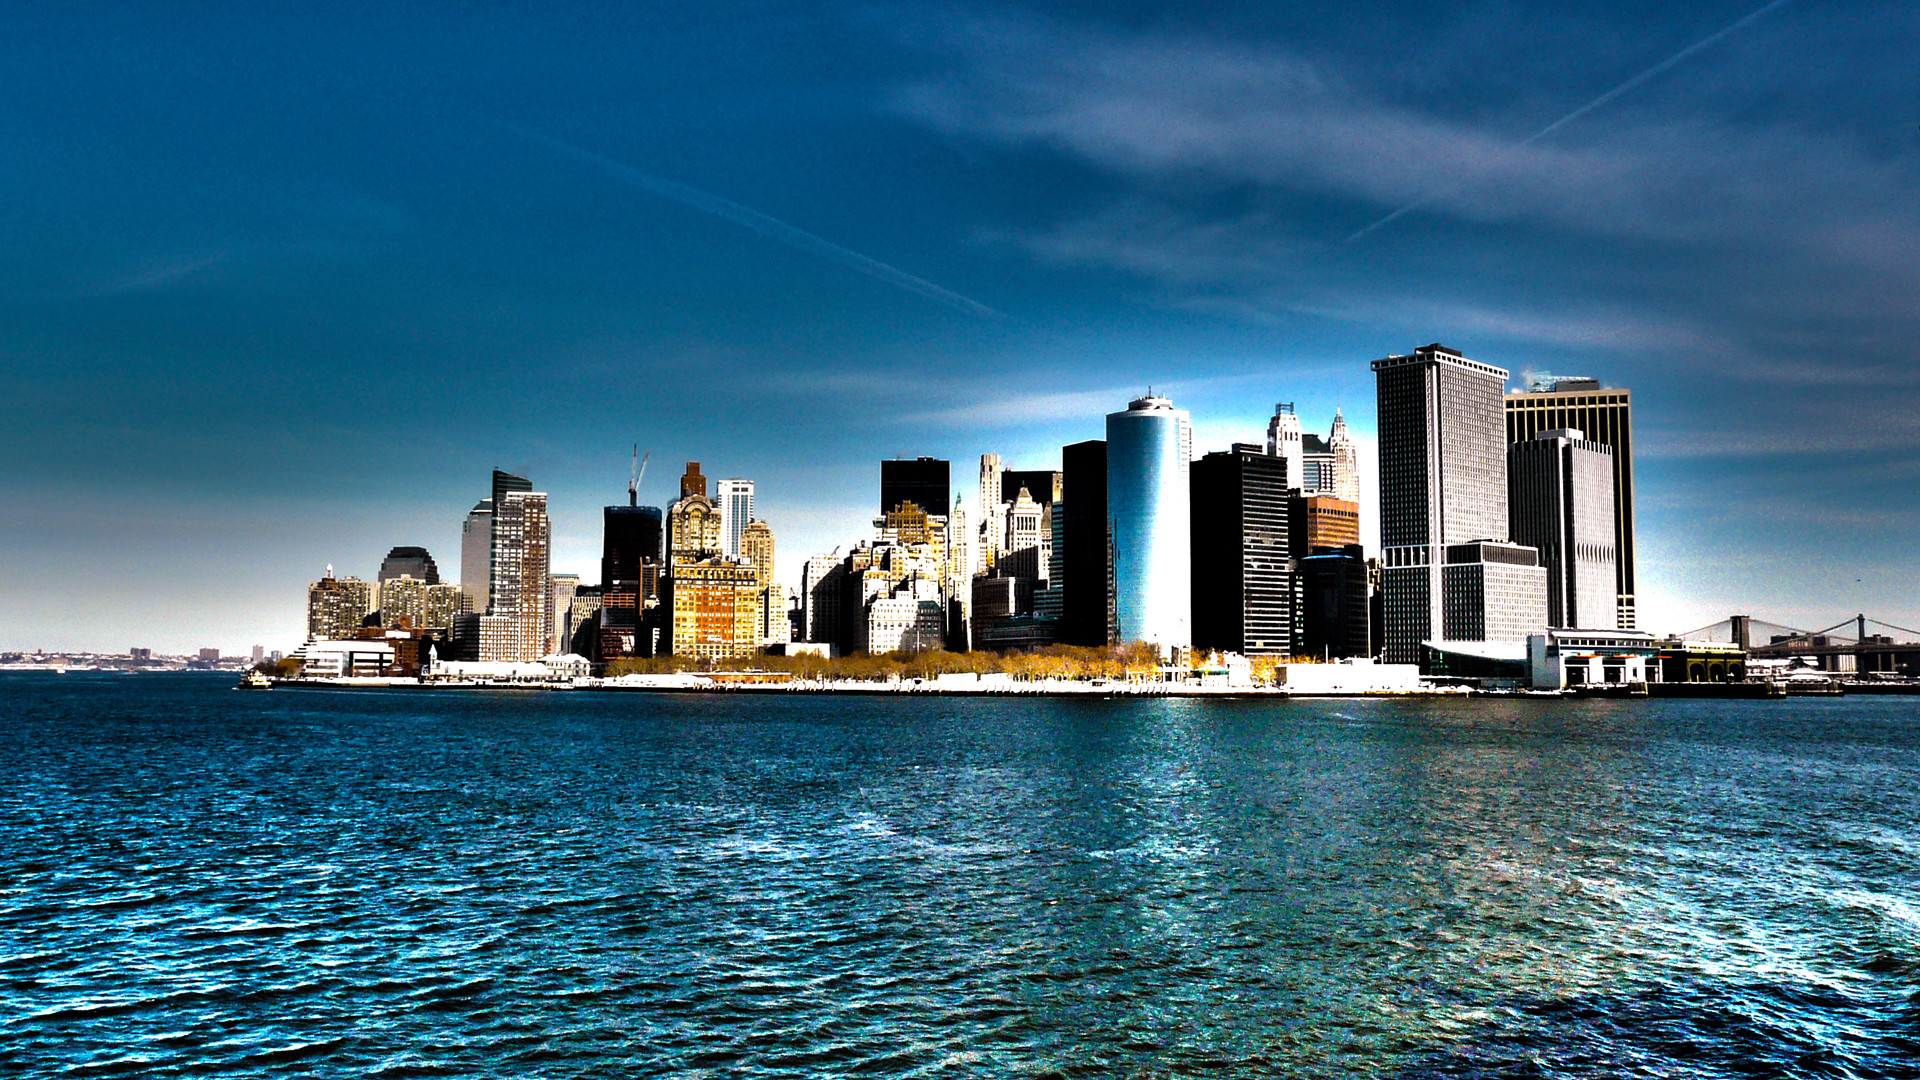 1920x1080 New York Skyline Wallpaper Wallpapers) – Adorable Wallpapers